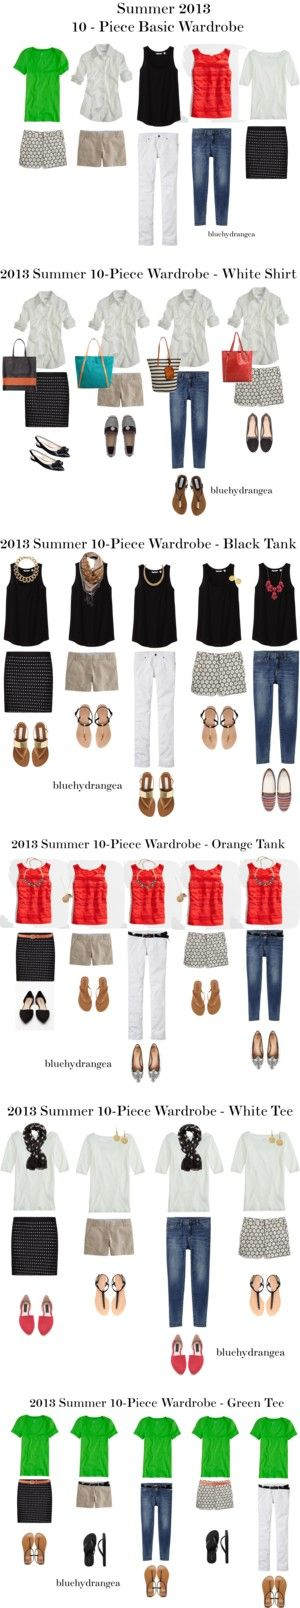 Summer 2013 Ten - Piece Basic Wardrobe by bluehydrangea on Polyvore featuring Uniqlo, Madewell, MANGO, J.Crew, Zara, Tory Burch, Nine West, Club Monaco, Steve Madden and Pieces